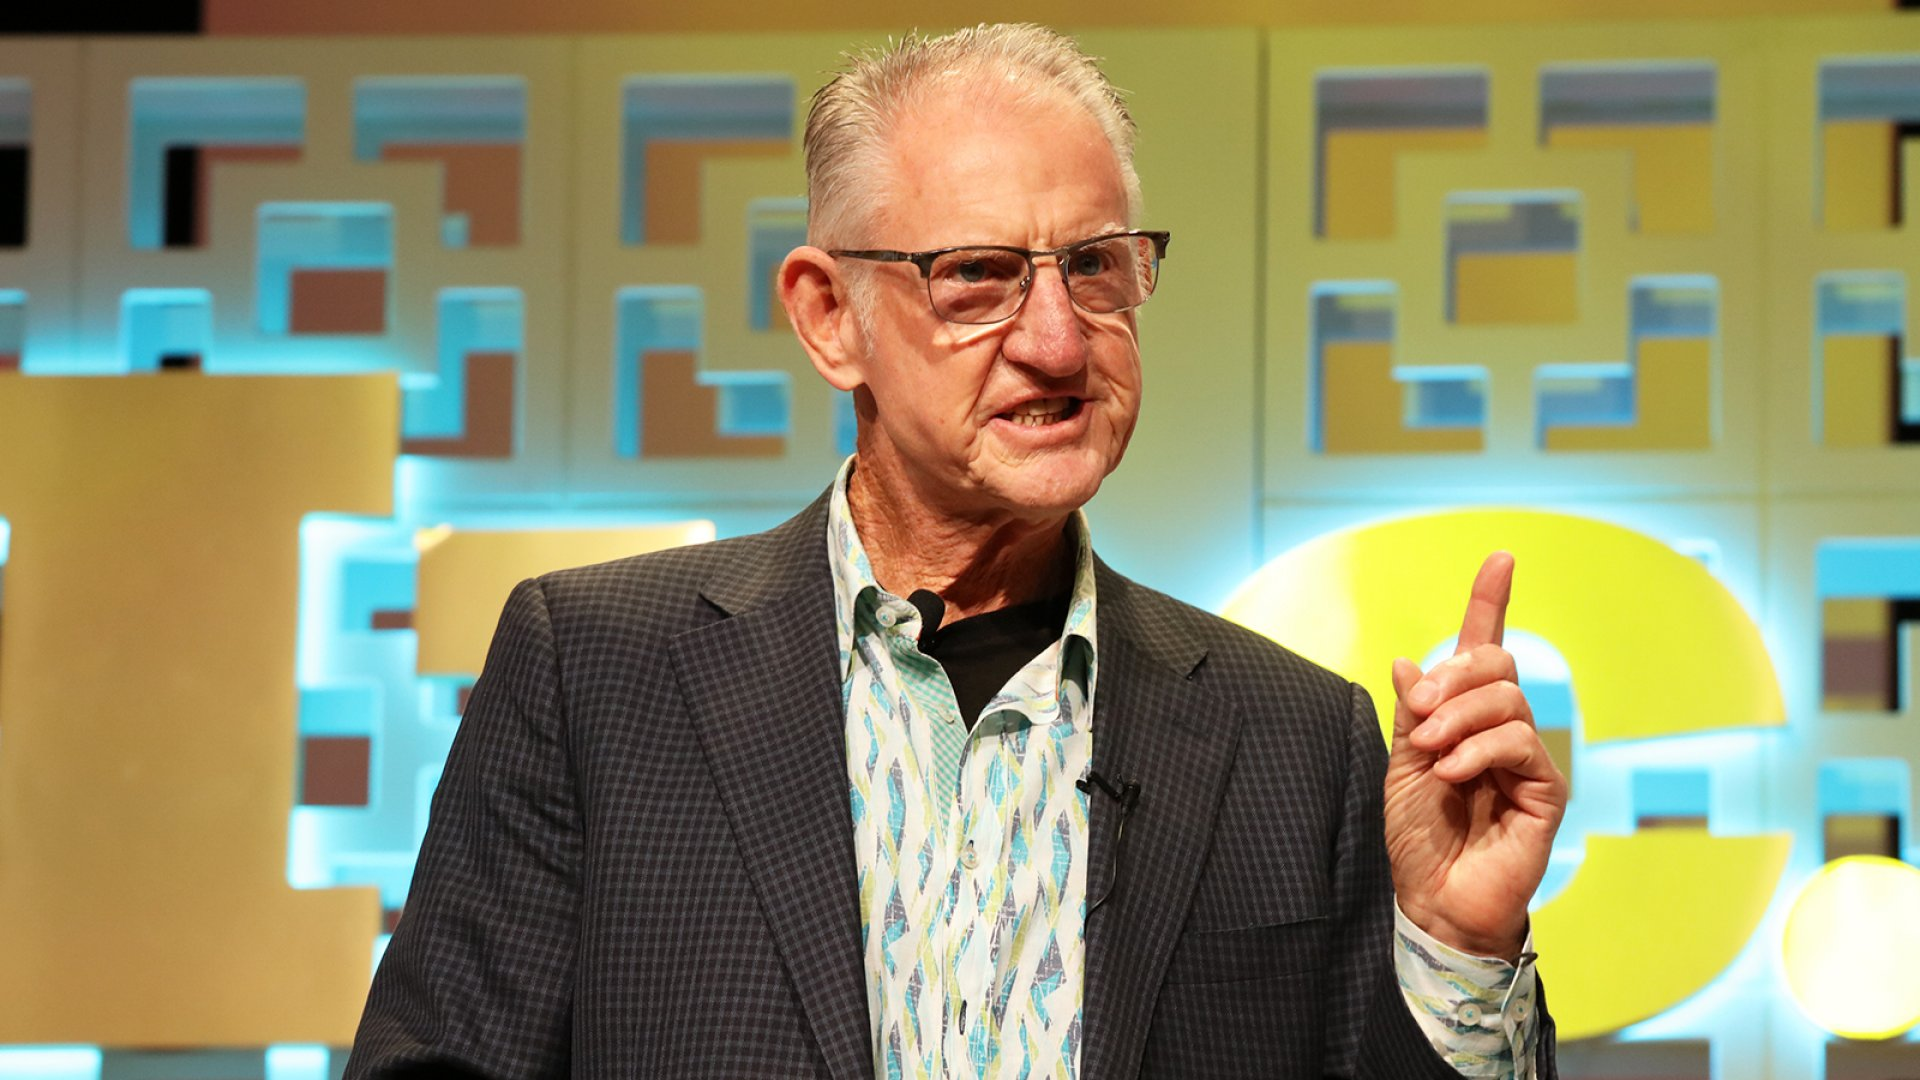 Brian Smith, founder of Ugg Australia Boots, speaks at the Inc. 5000 Conference.